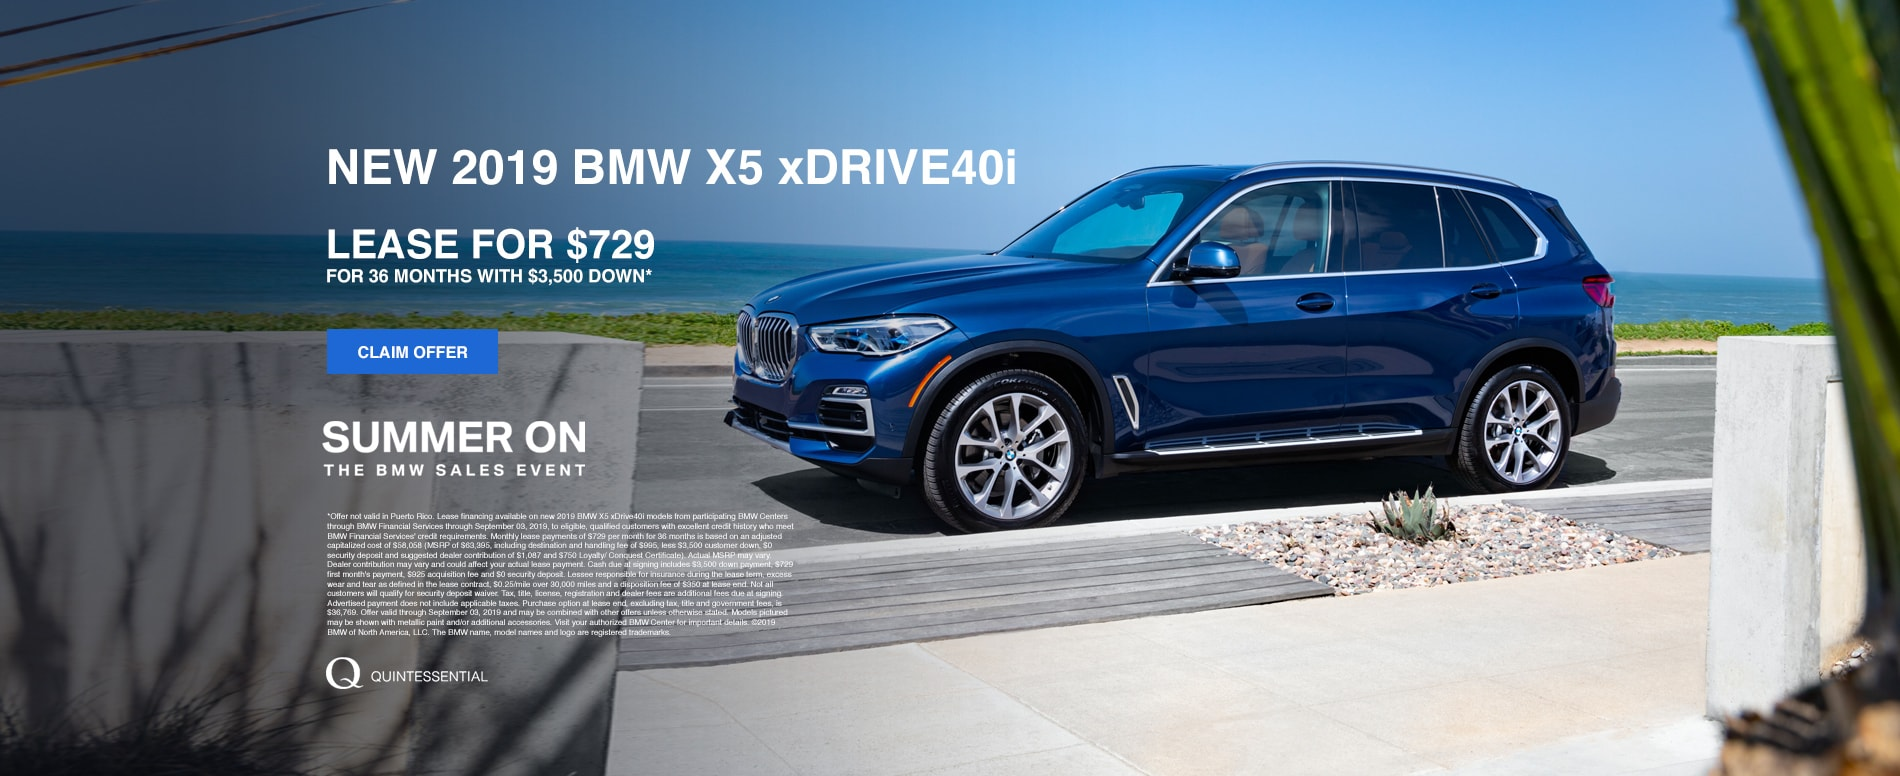 Braman BMW | BMW Dealership in Miami, FL | New & Used BMW Dealer